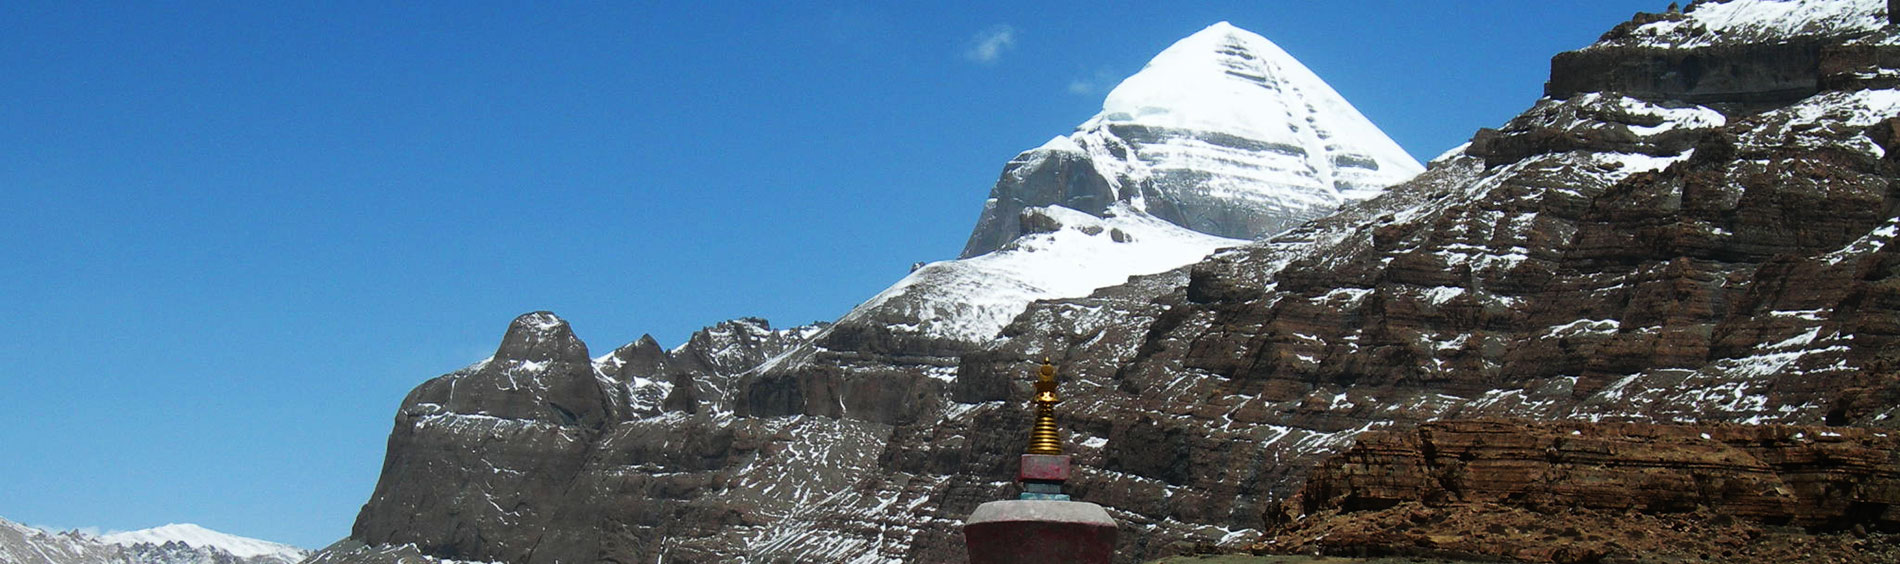 Tibet: 18d Mt. Kailash Trek- Tibet Pilgrimage Tours, Mt.Kailash Pilgrimage Tour